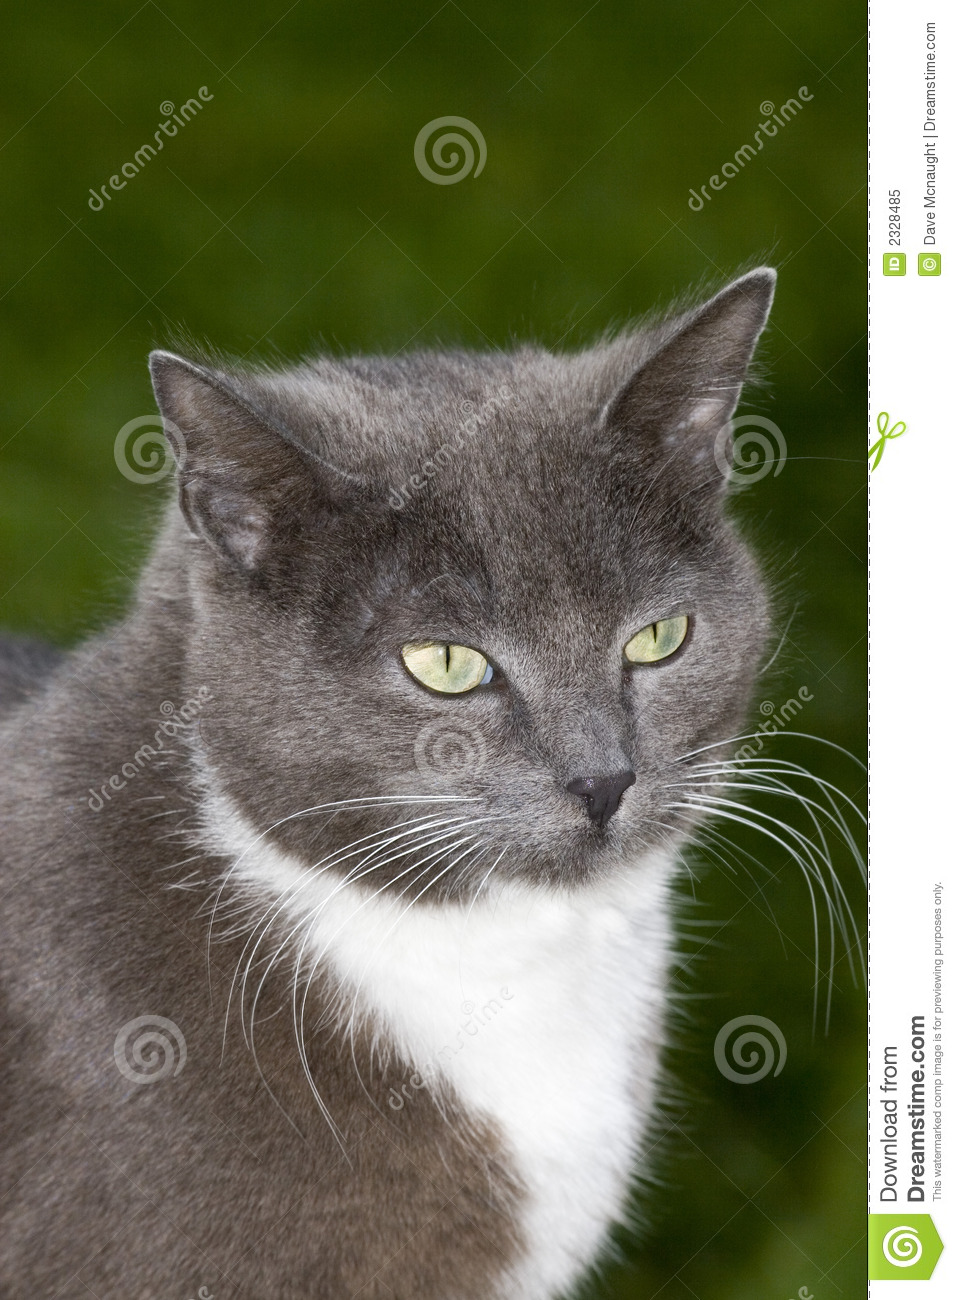 Garden Dreams Smokey The Cat Royalty Free Stock Photo - Image: 2328485